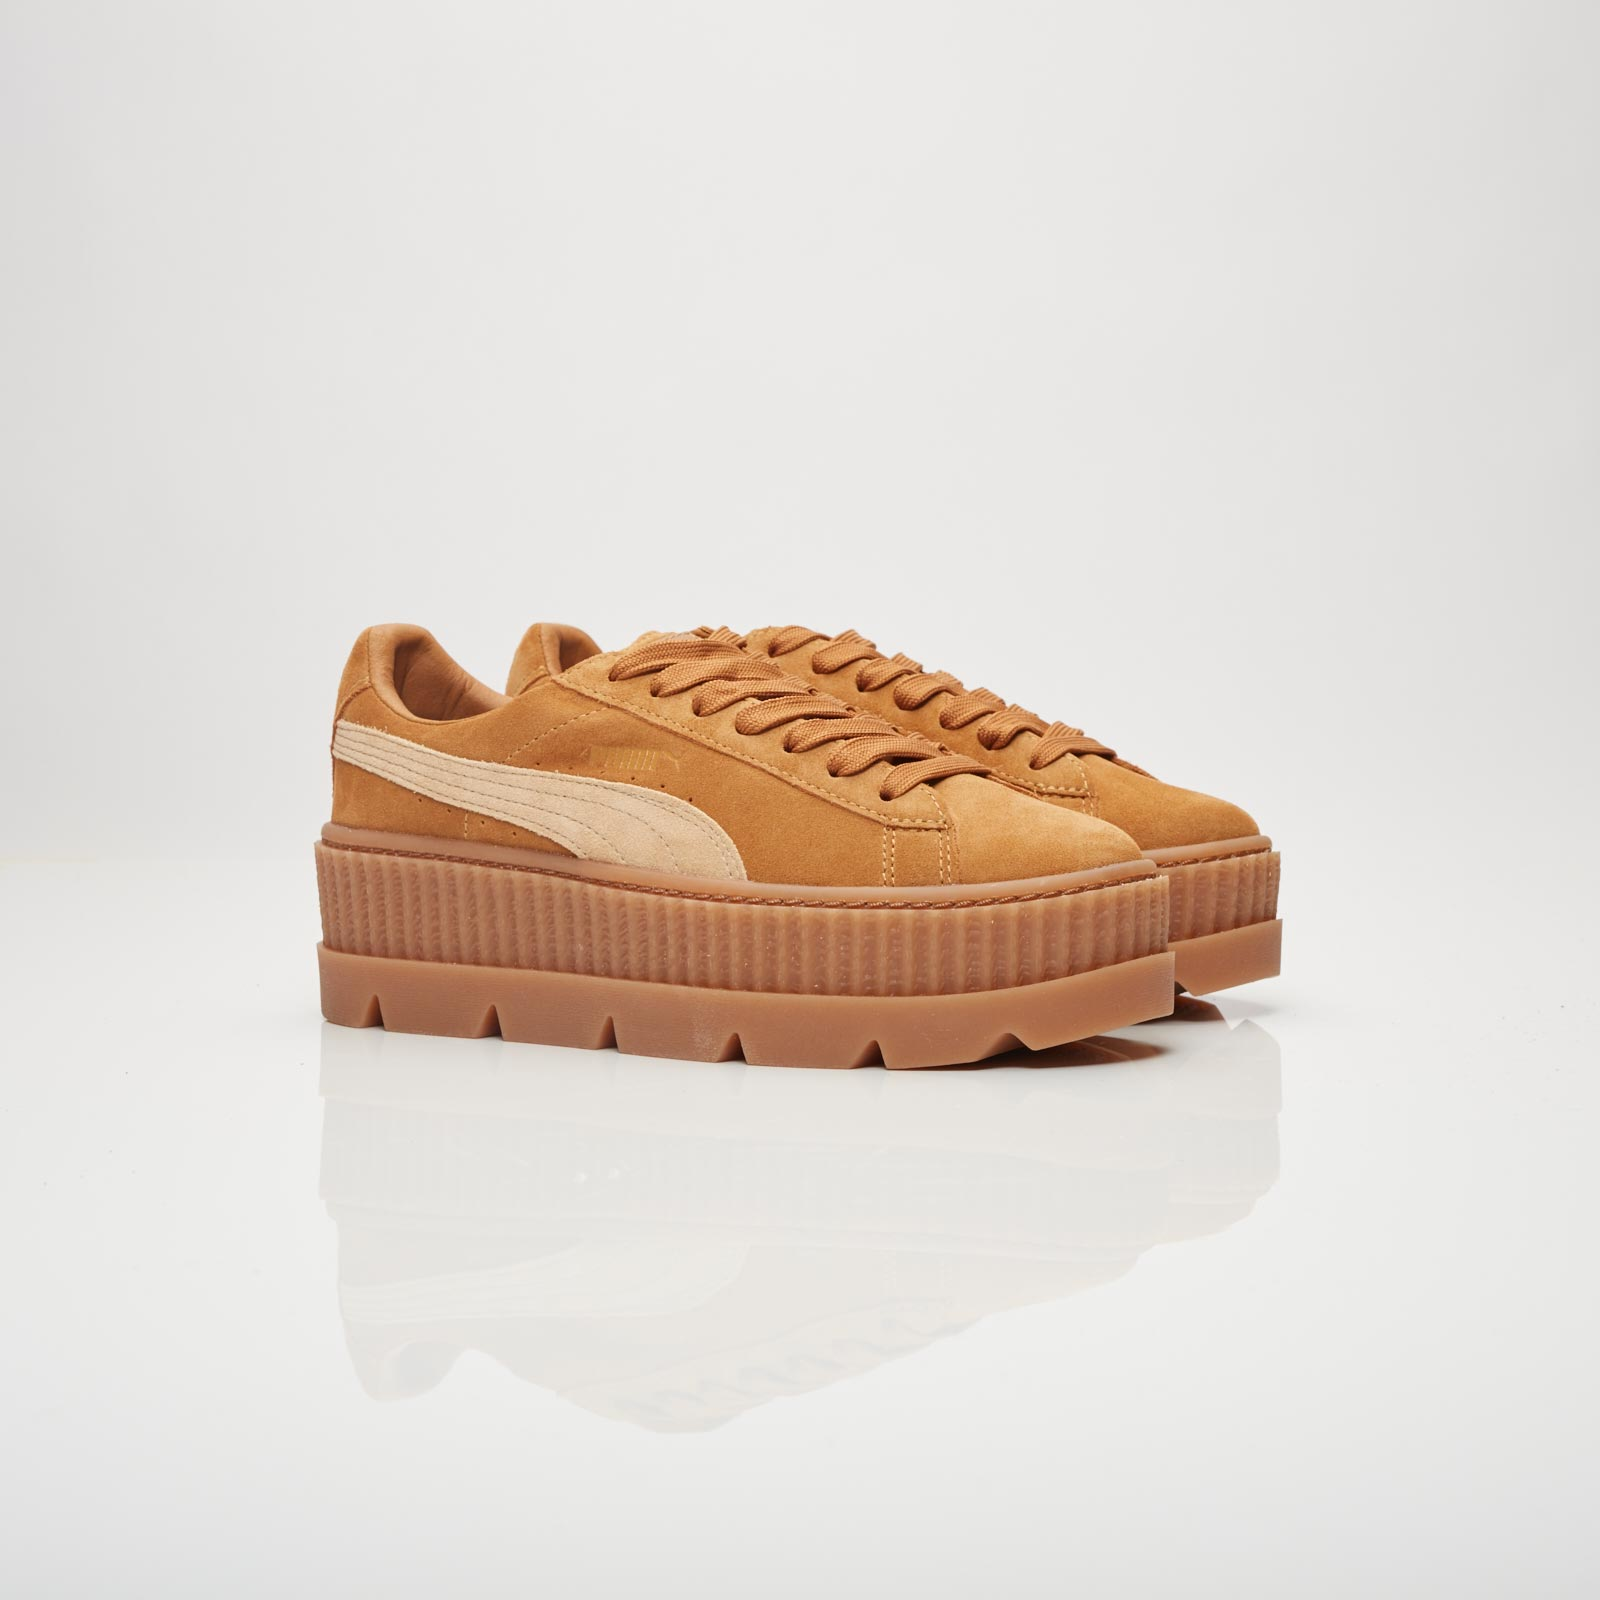 2c1286c4d6a23f Puma Cleated Creeper Suede Wns - 366268-02 - Sneakersnstuff ...